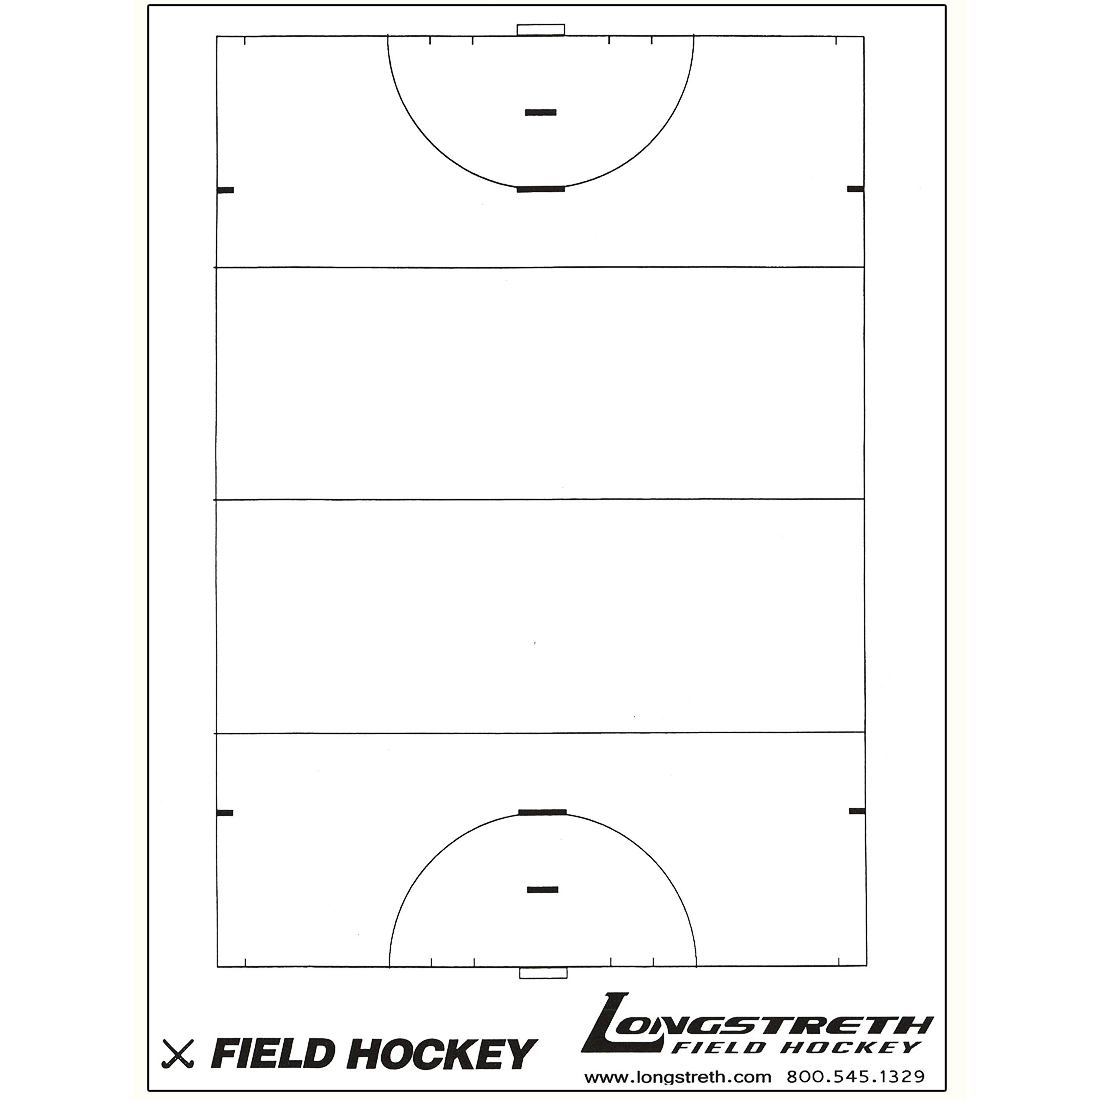 Field Hockey Diagram Tablet Longstreth Com Field Hockey Hockey Basketball Court Flooring